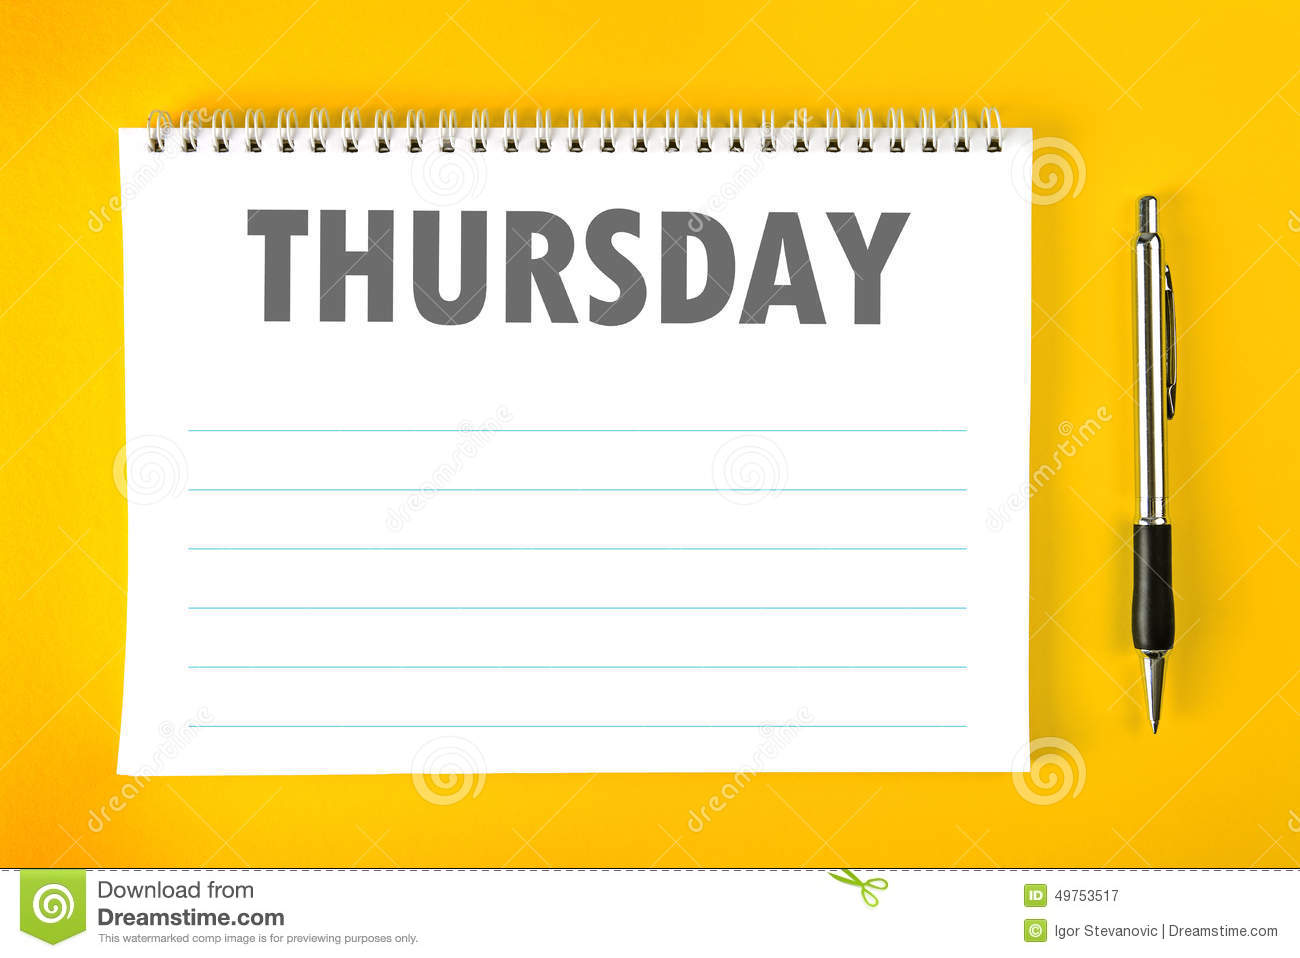 Thursday Calendar Schedule Blank Page Stock Photo - Image: 49753517